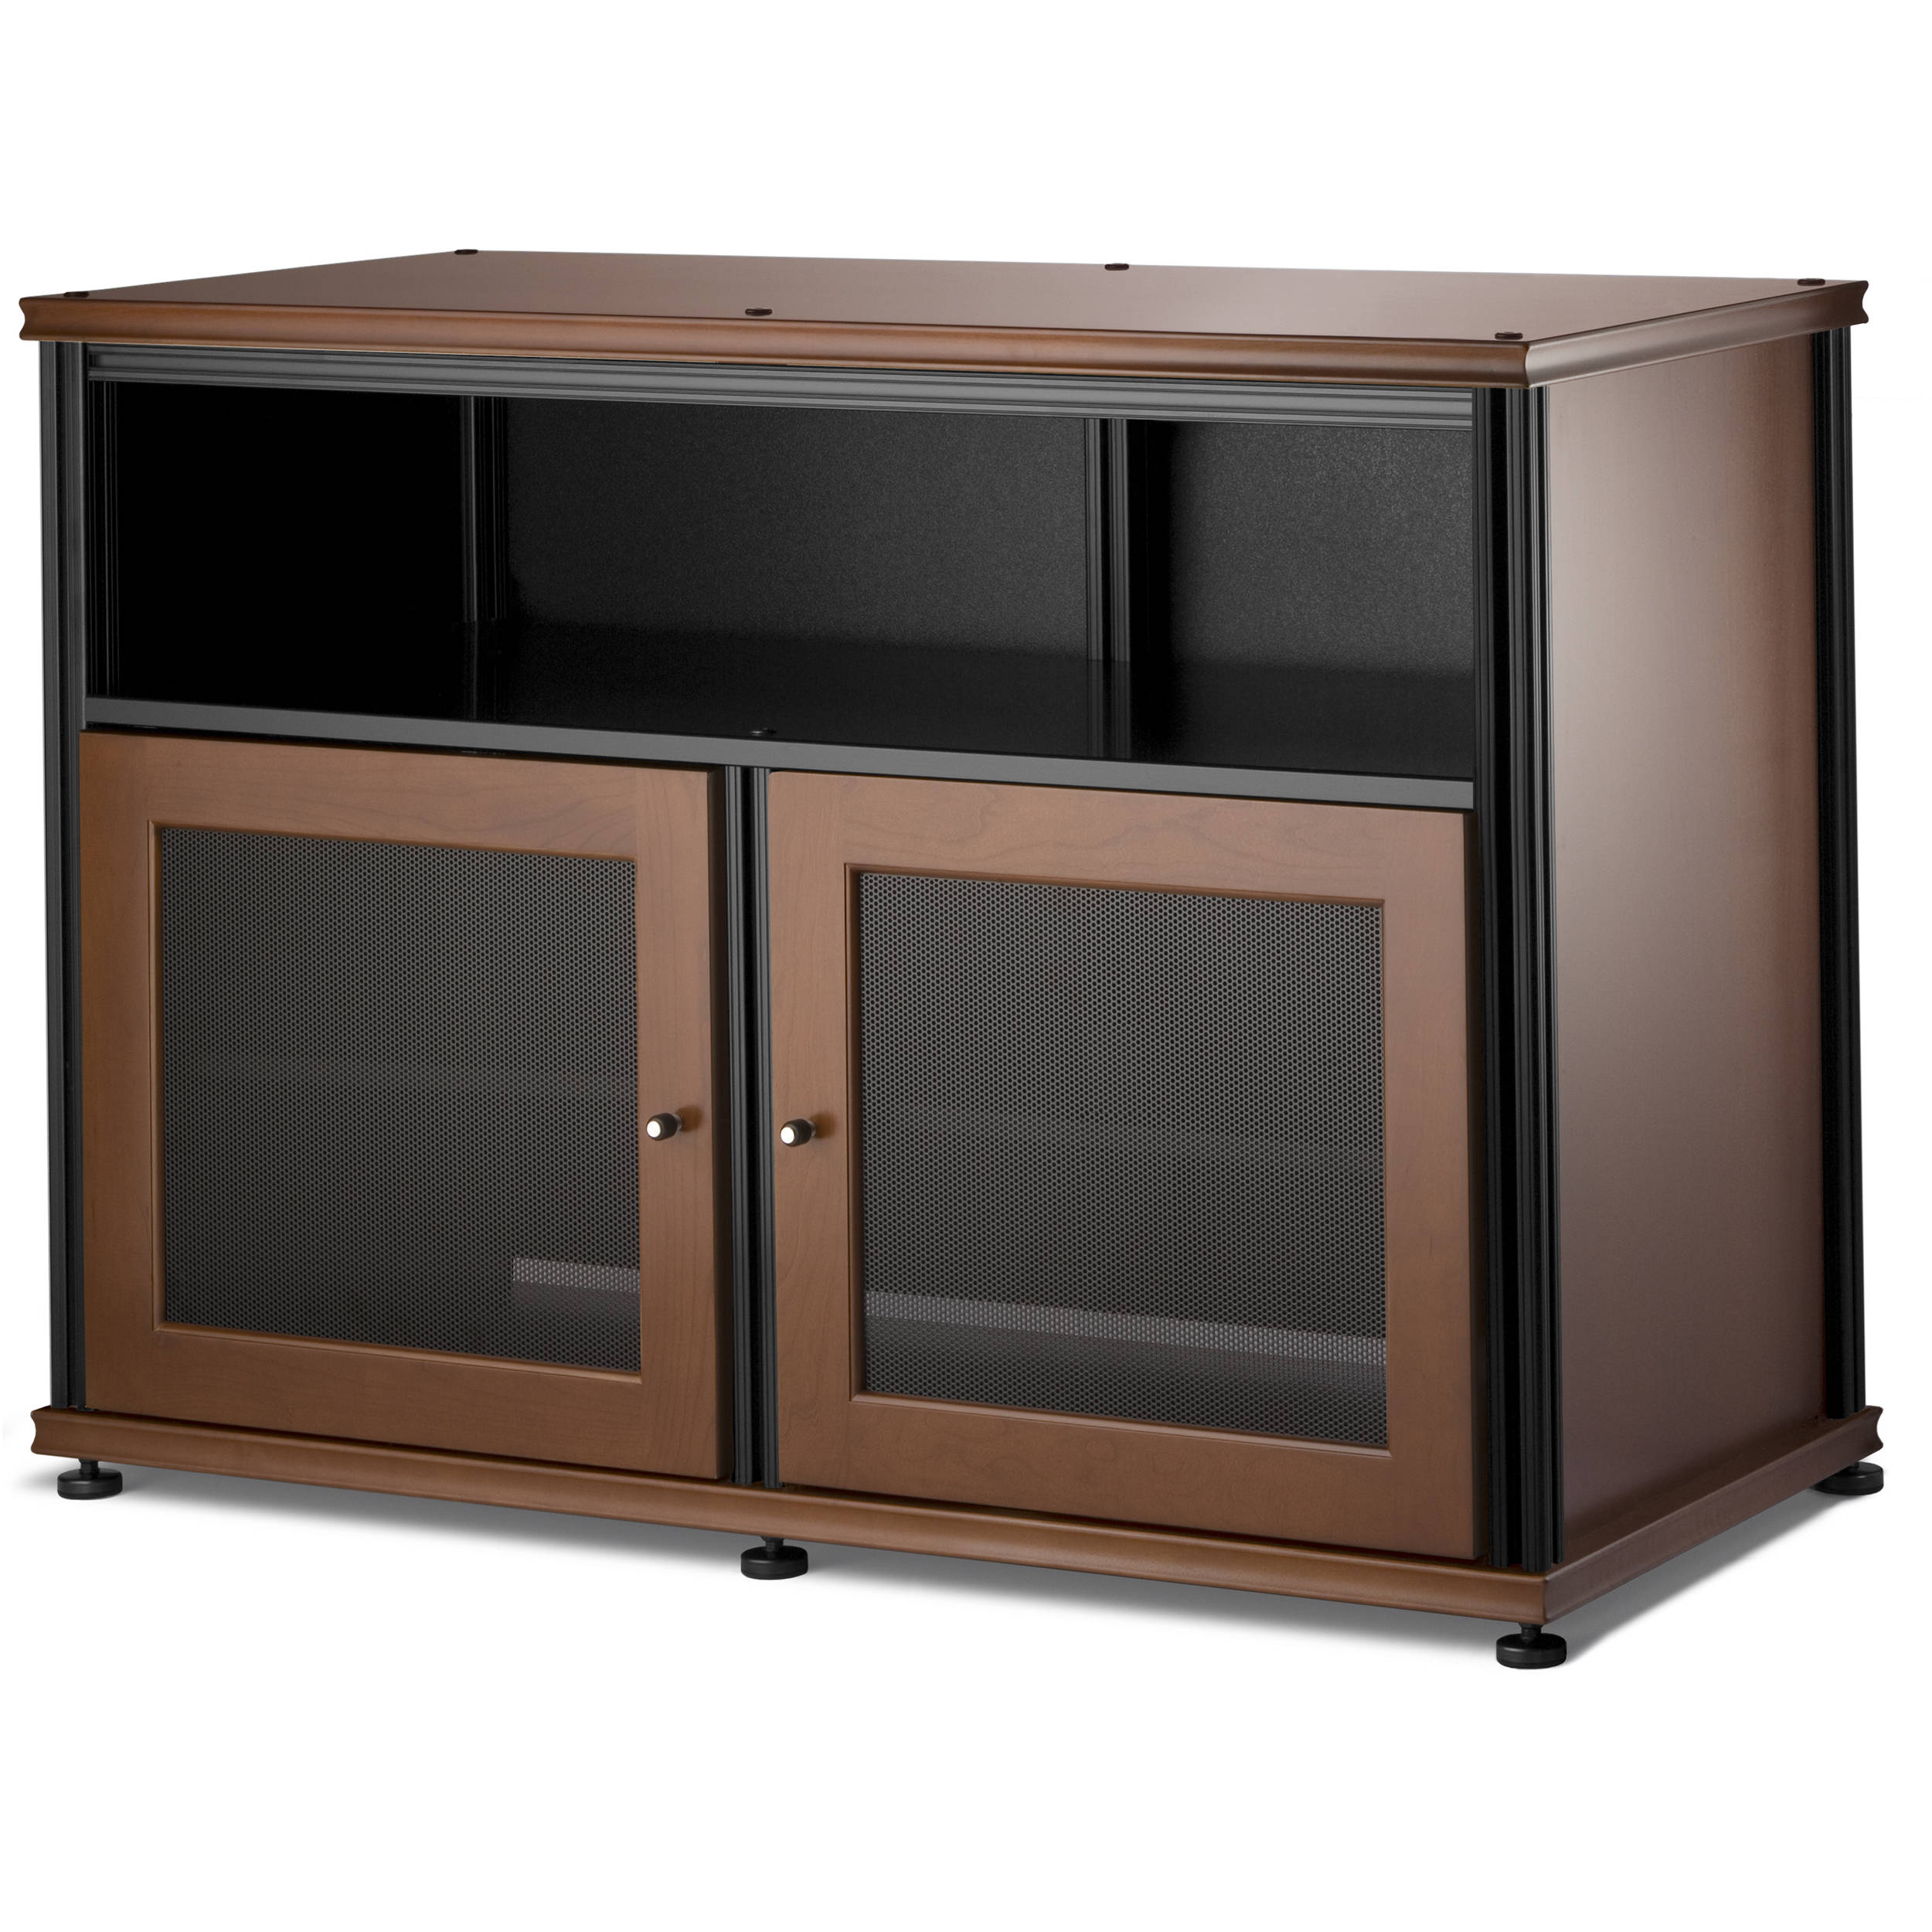 in cabinets centers is to airplate av video and the electronics cooling theaters center designed audio enclosed entertainment fans quietly theater cabinet home cool system quiet